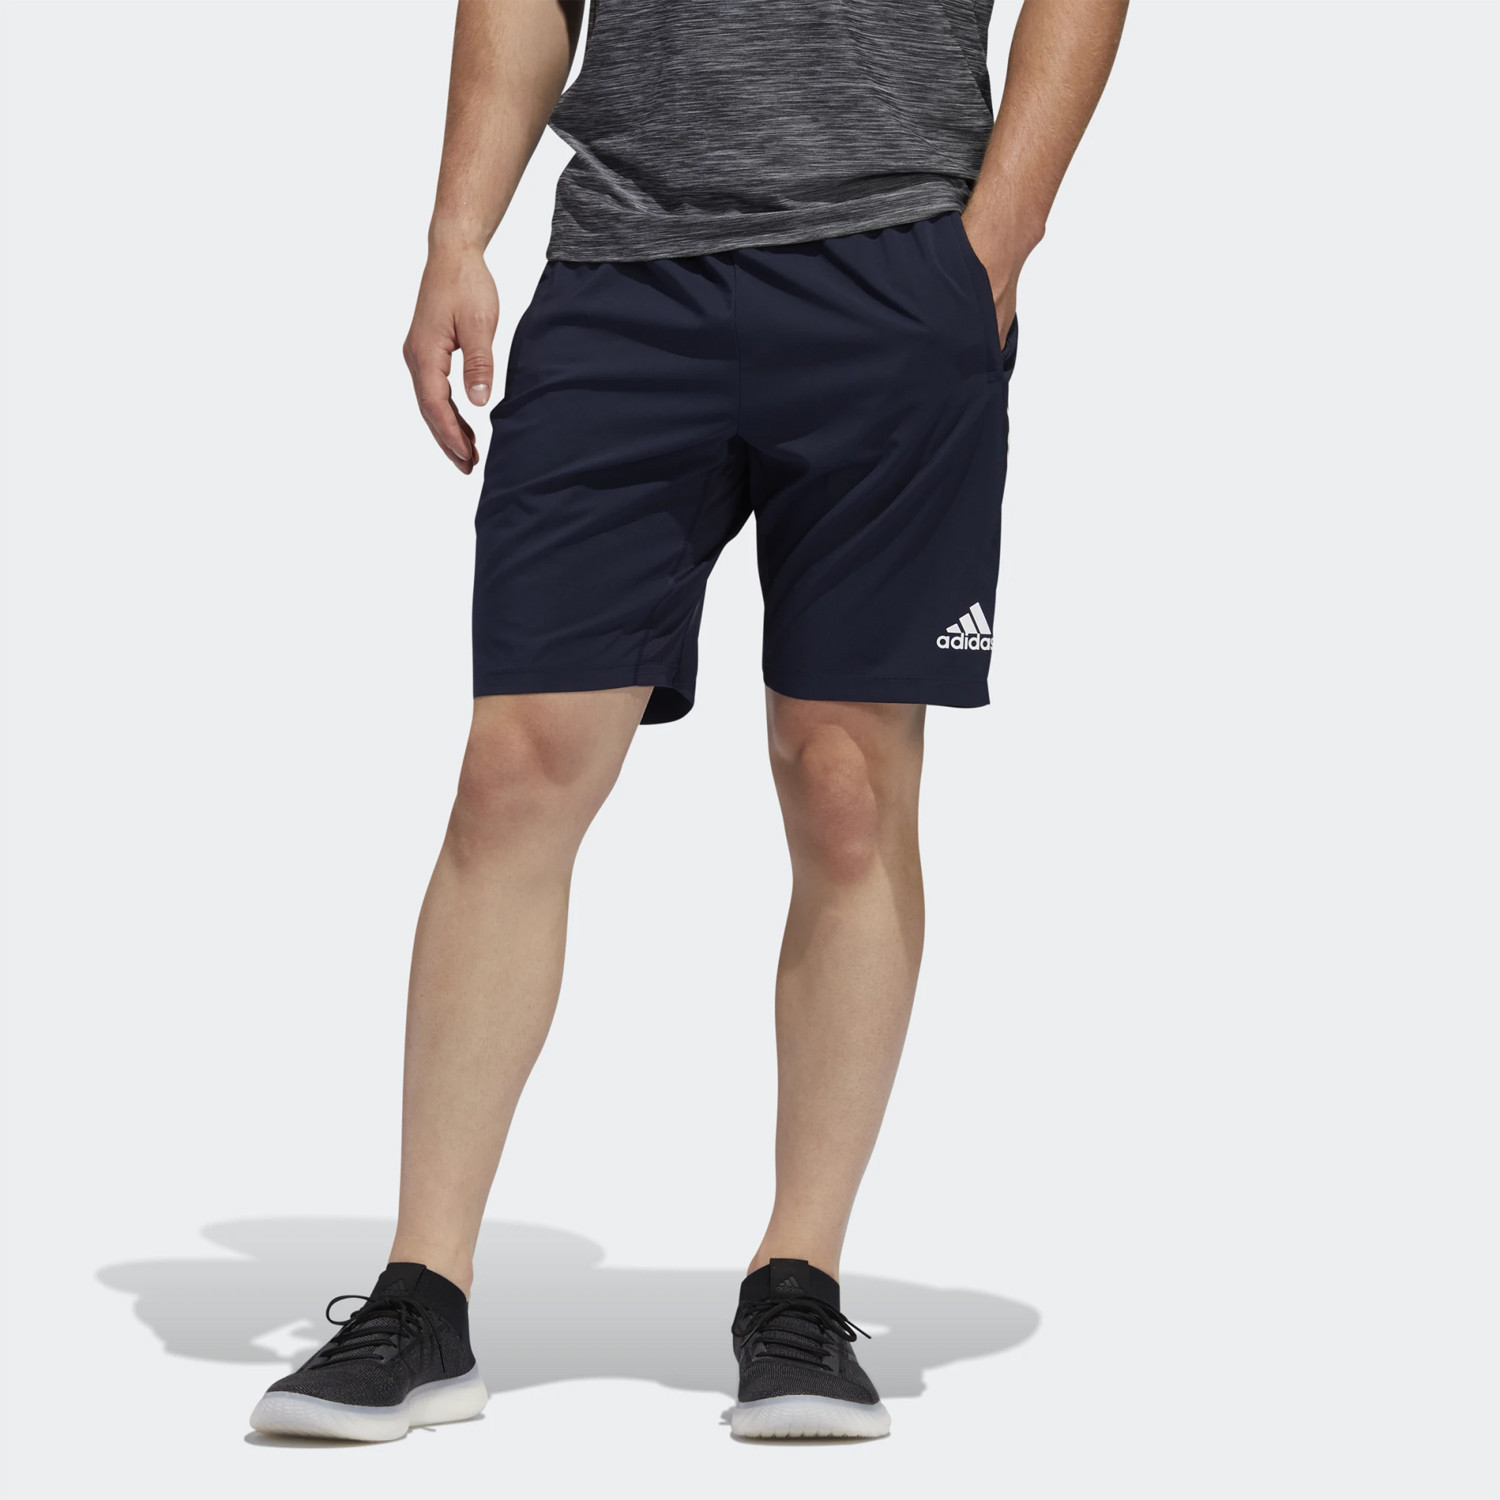 adidas 4KRFT 3-Stripes 9-Inch Men's Shorts (9000045099_3558)